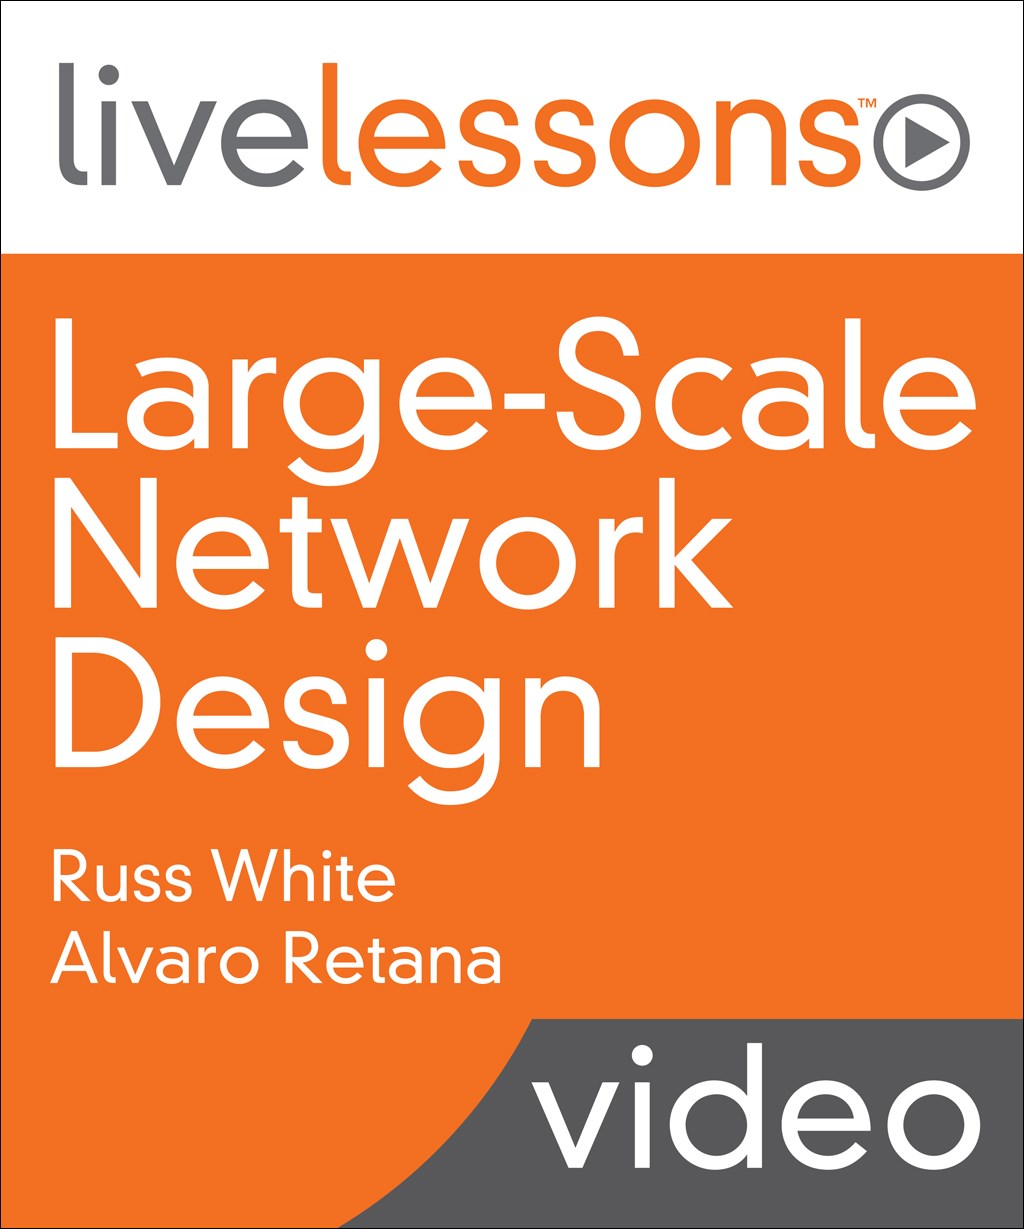 Large-Scale Network Design LiveLessons